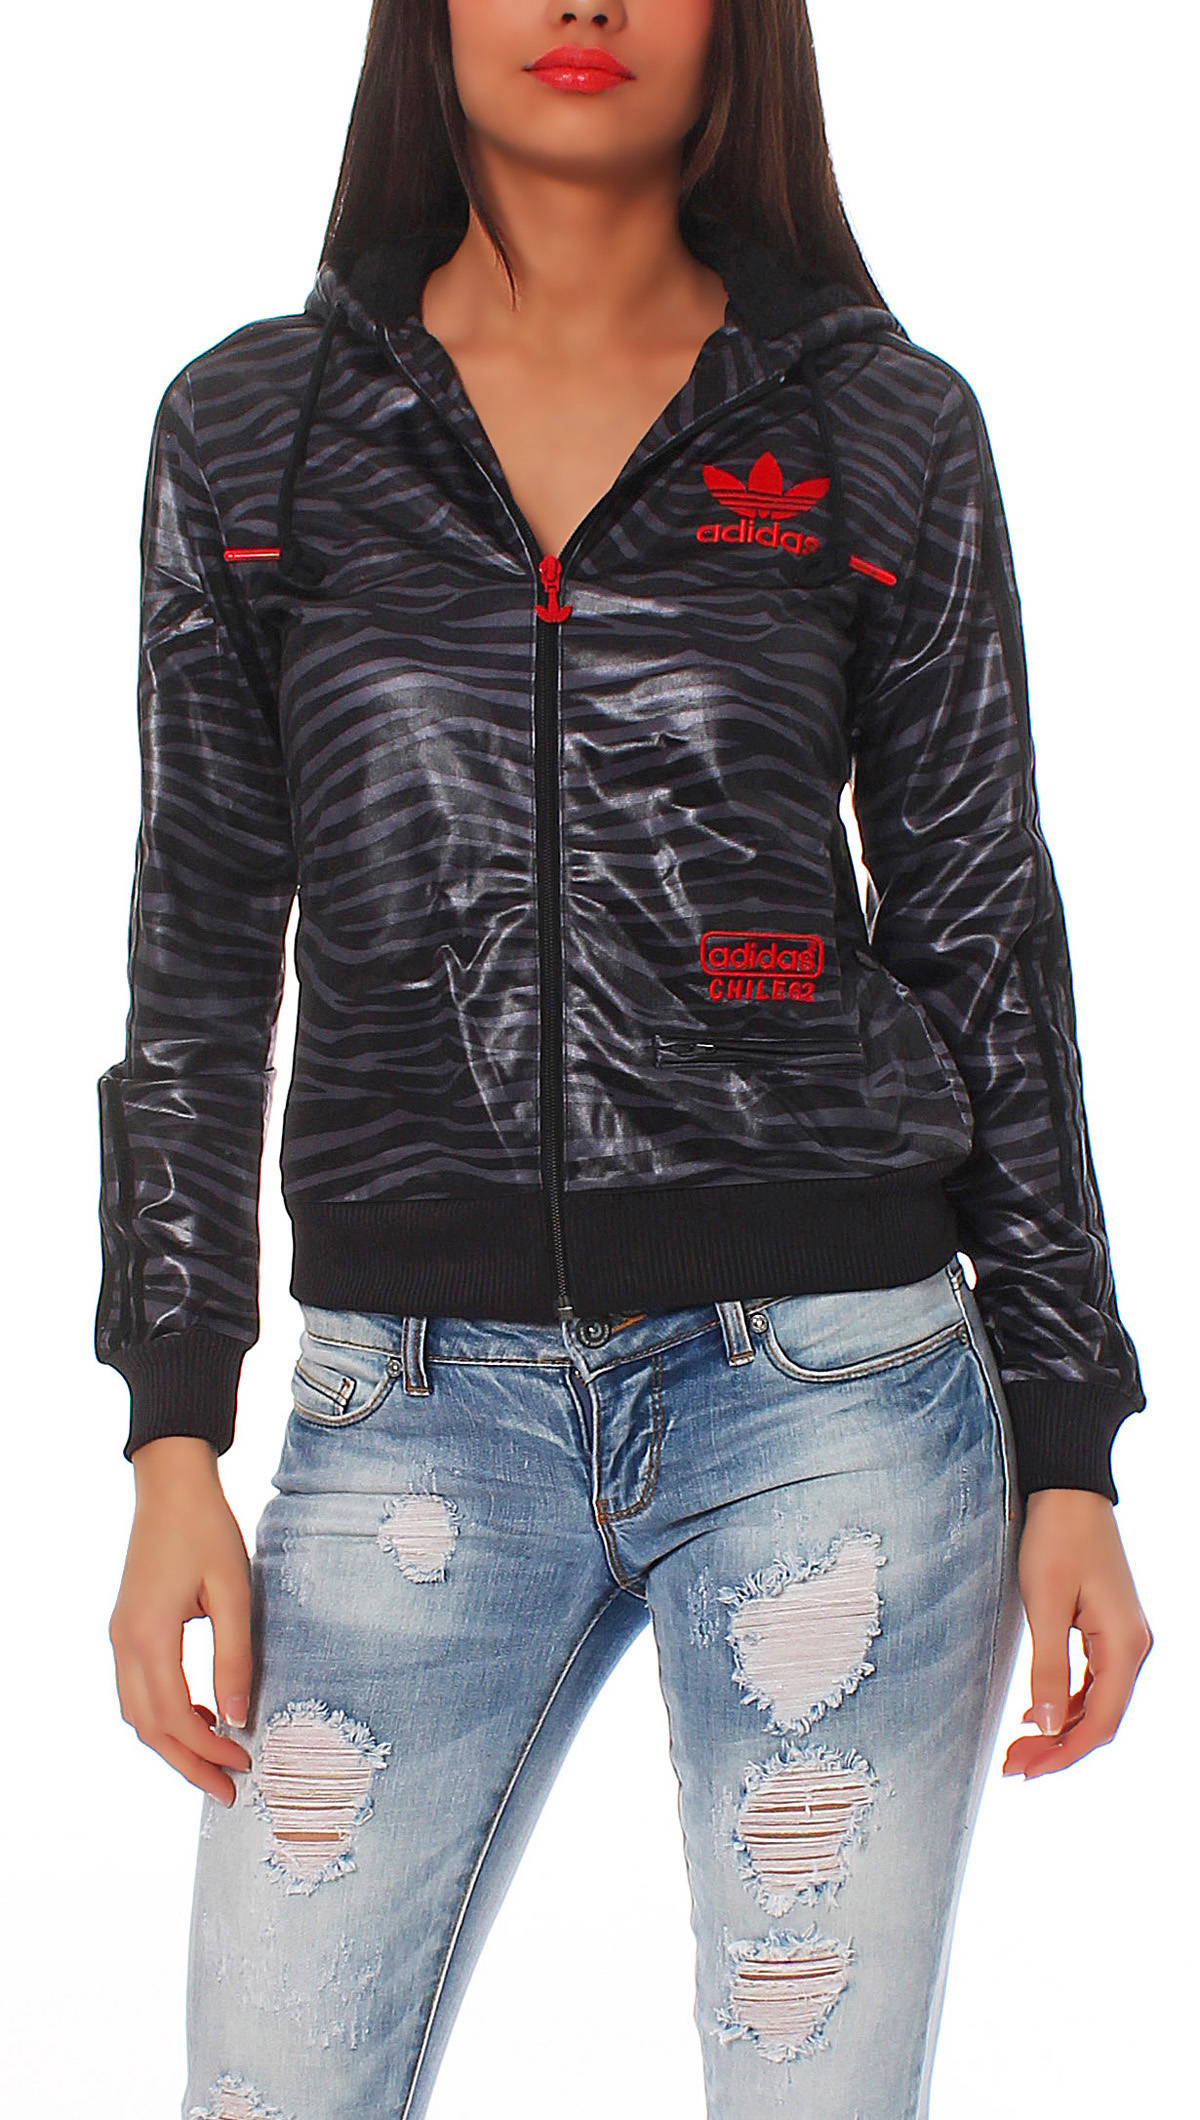 adidas chile 62 zebra fz hood trainingsjacke damen schwarz. Black Bedroom Furniture Sets. Home Design Ideas